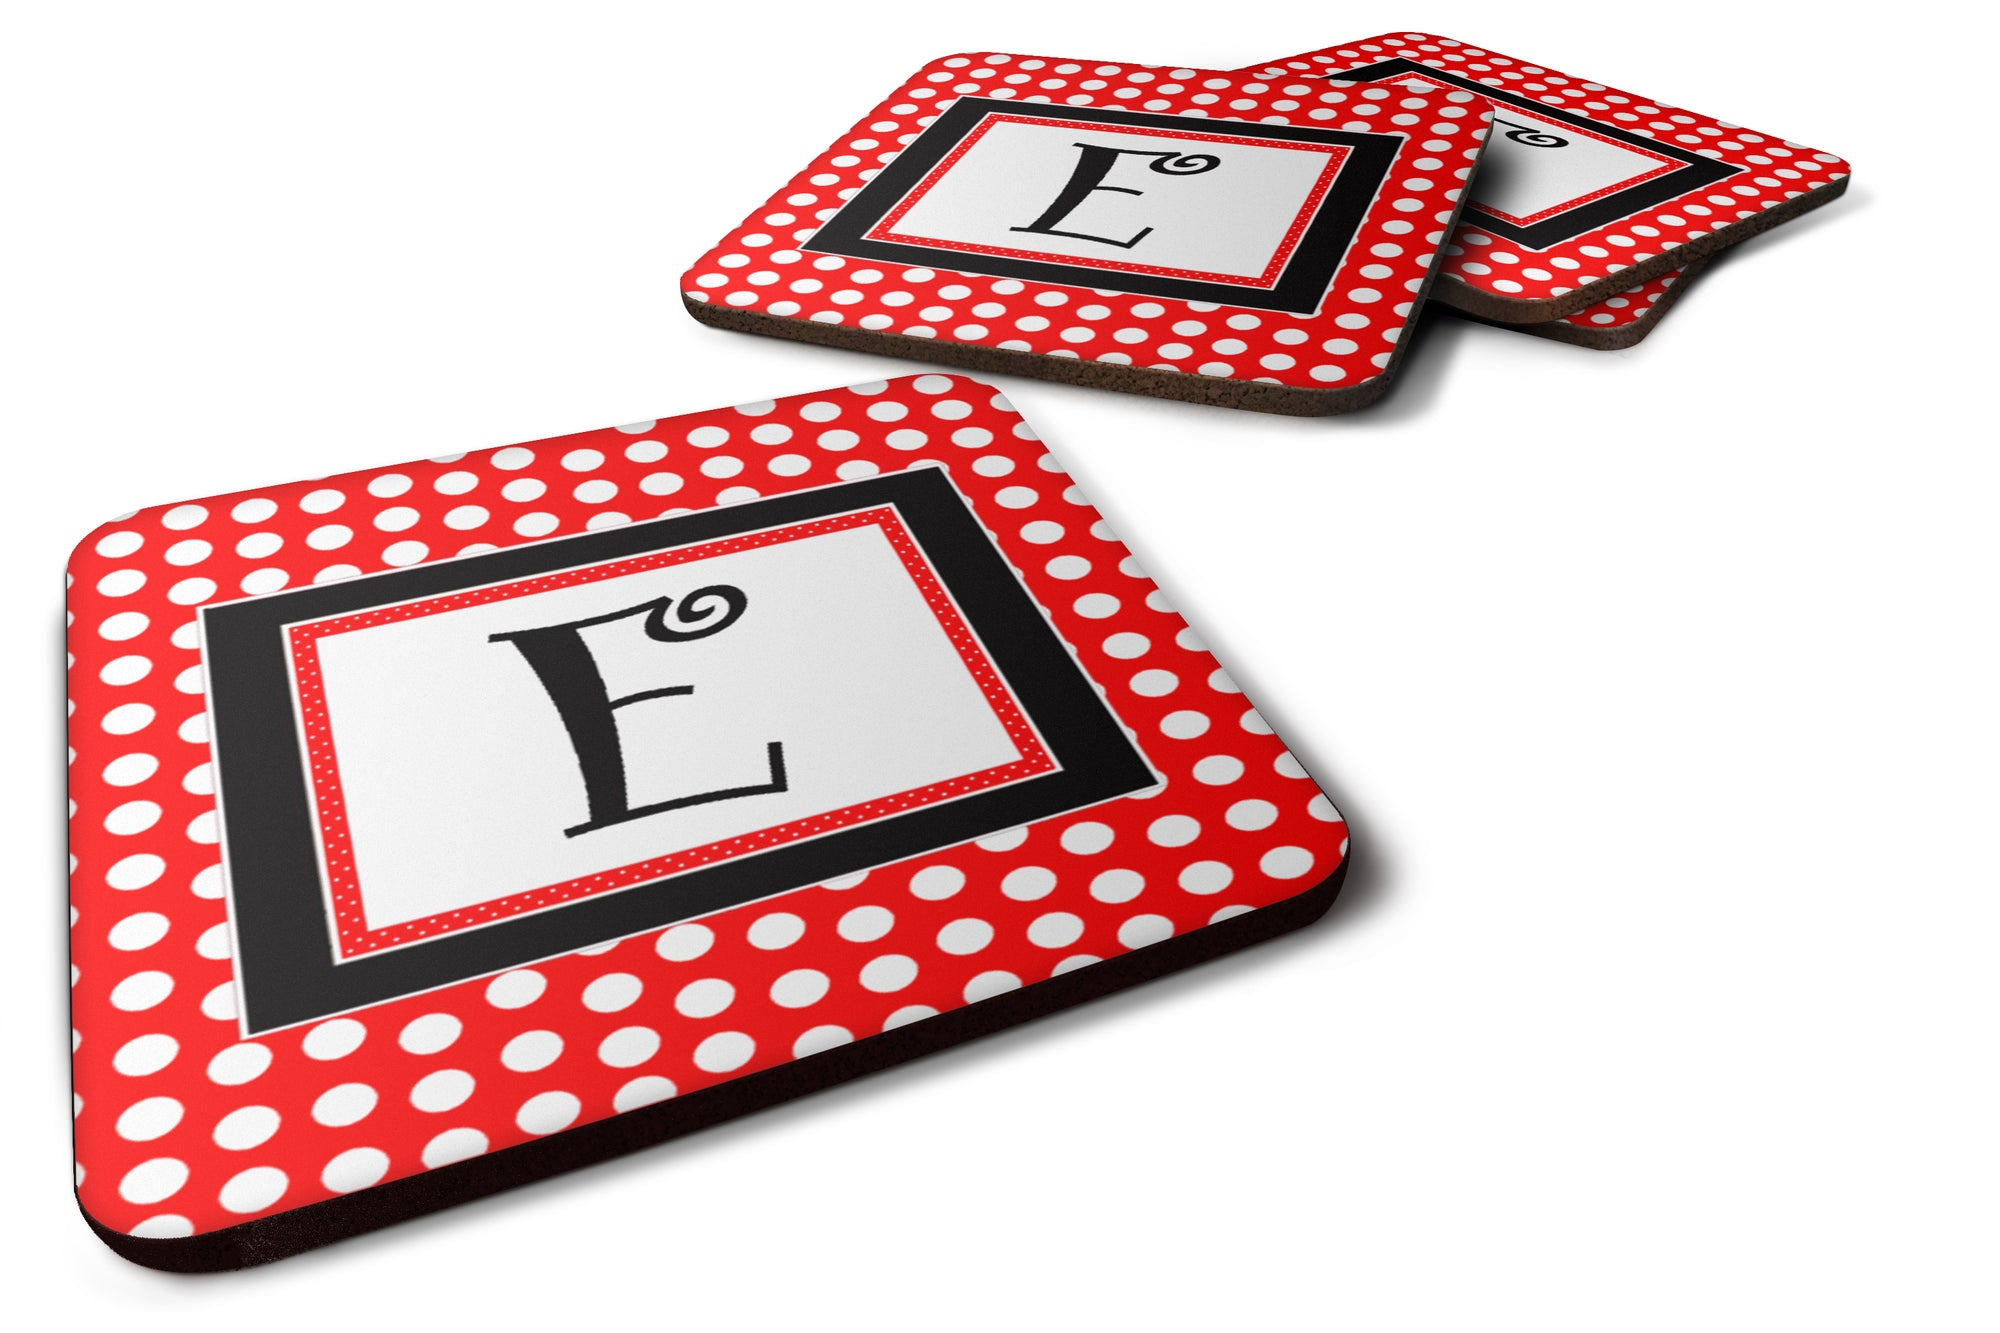 Set of 4 Monogram - Red Black Polka Dots Foam Coasters Initial Letter E by Caroline's Treasures